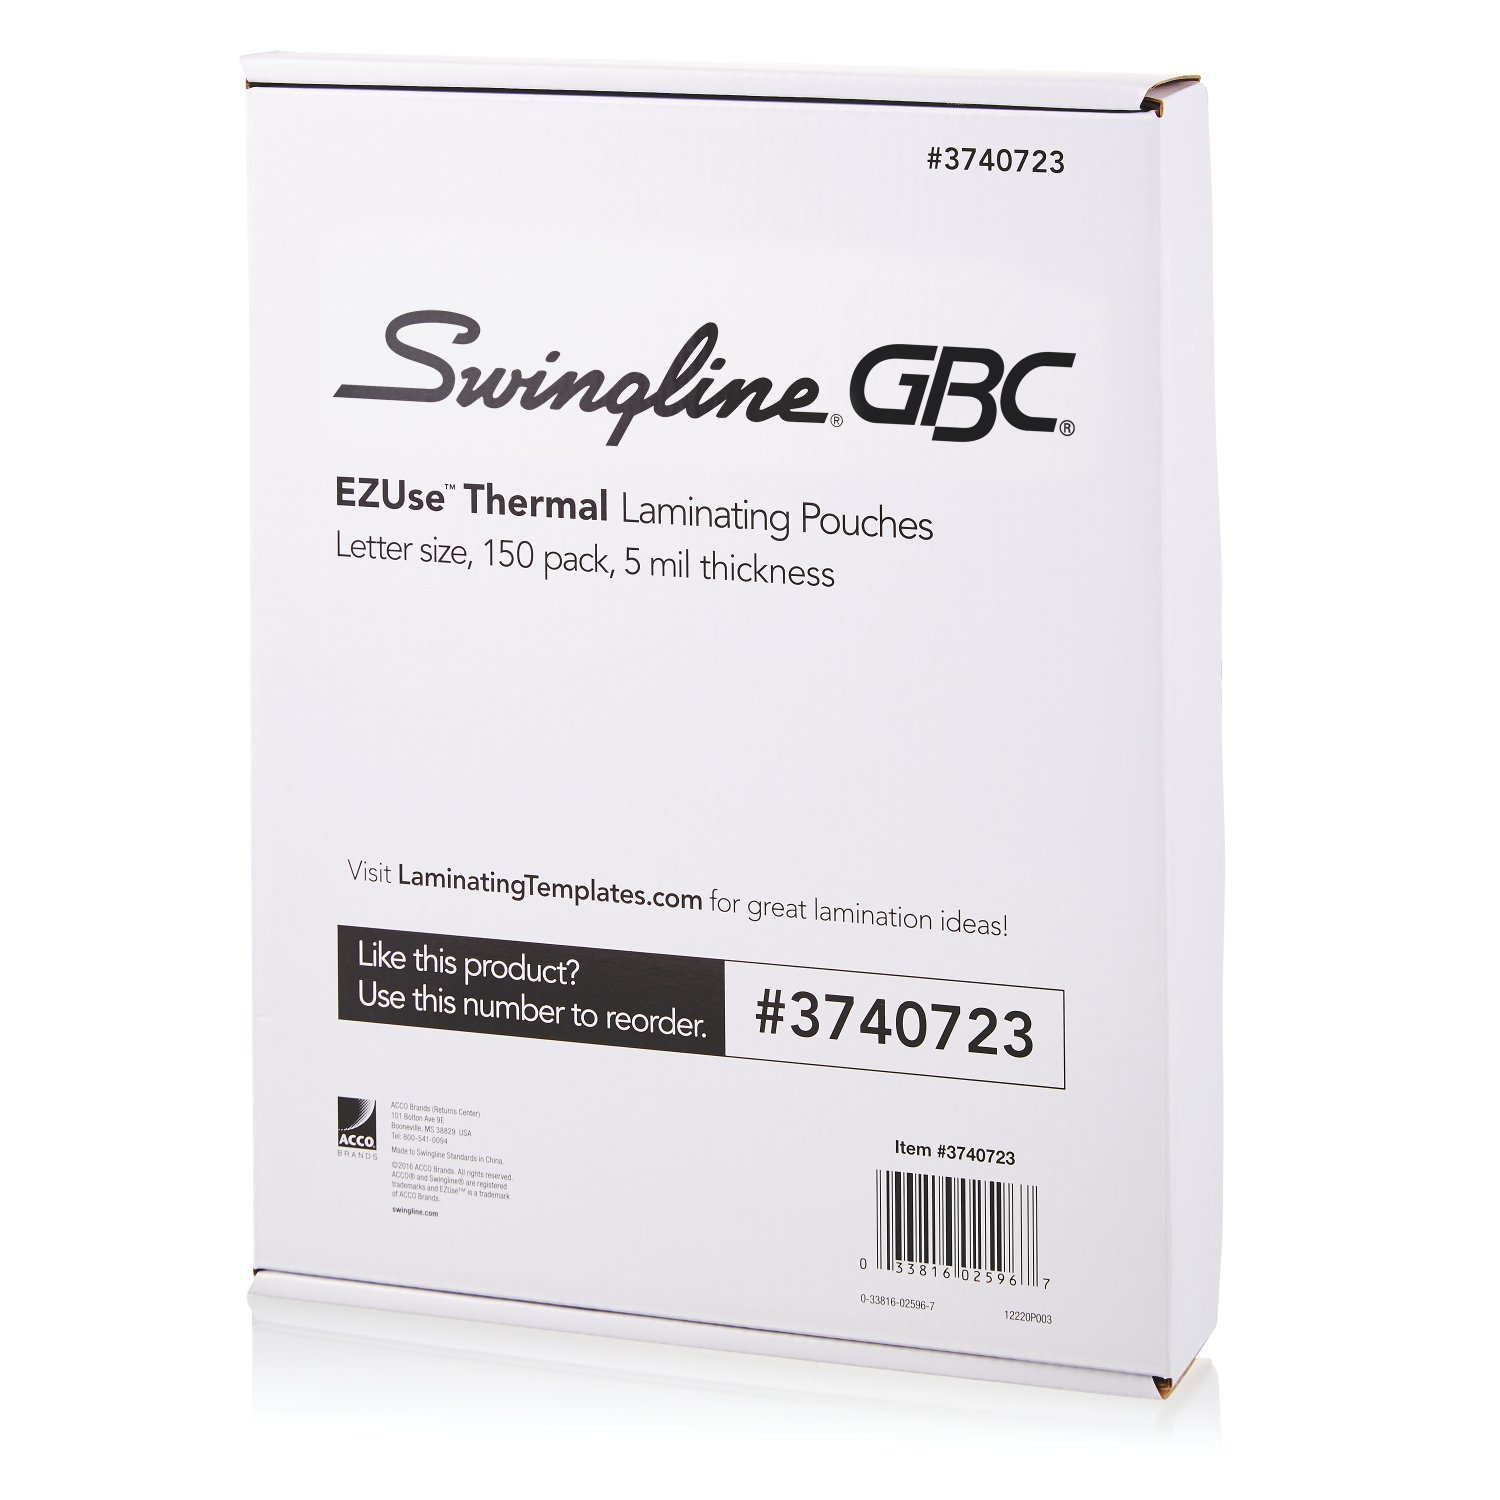 Swingline GBC Thermal Laminating Sheets/Pouches, Letter Size, Speed Pouch, 3 Mil, EZUse, 200-Count (3740726) ACCO Brands